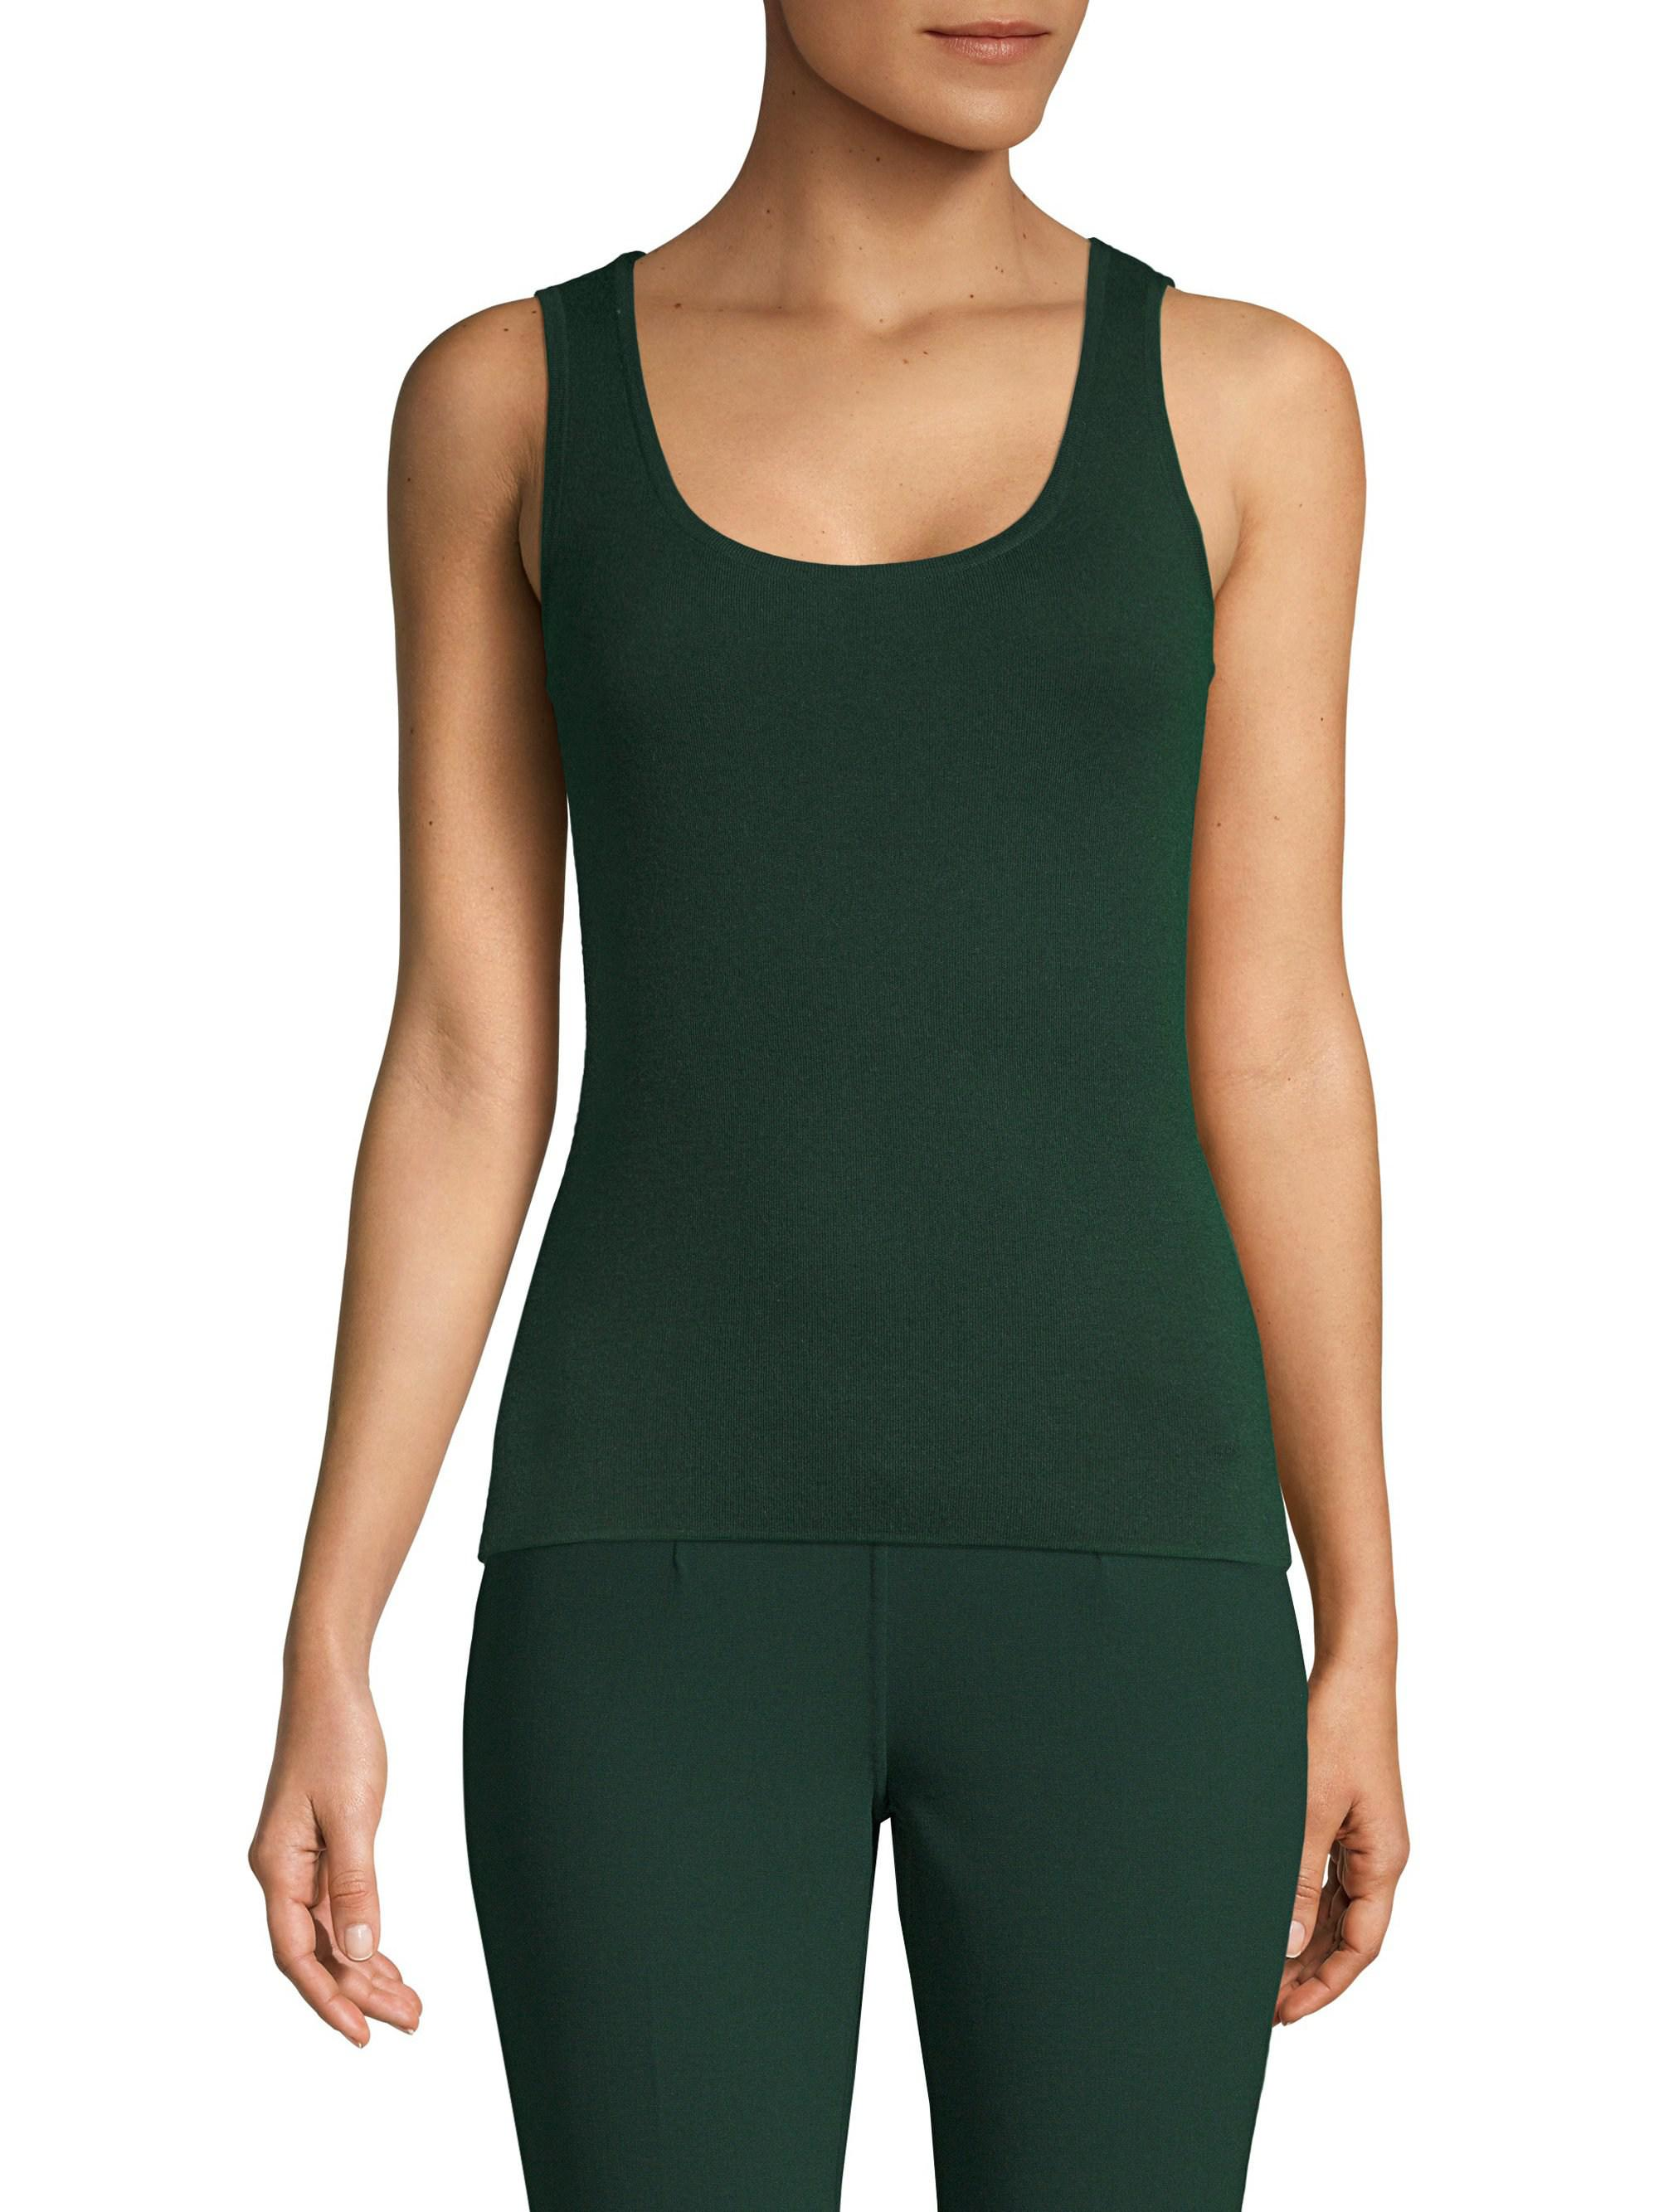 aad8bed170f6f Lyst - Michael Kors Cashmere Scoopneck Tank Top in Green